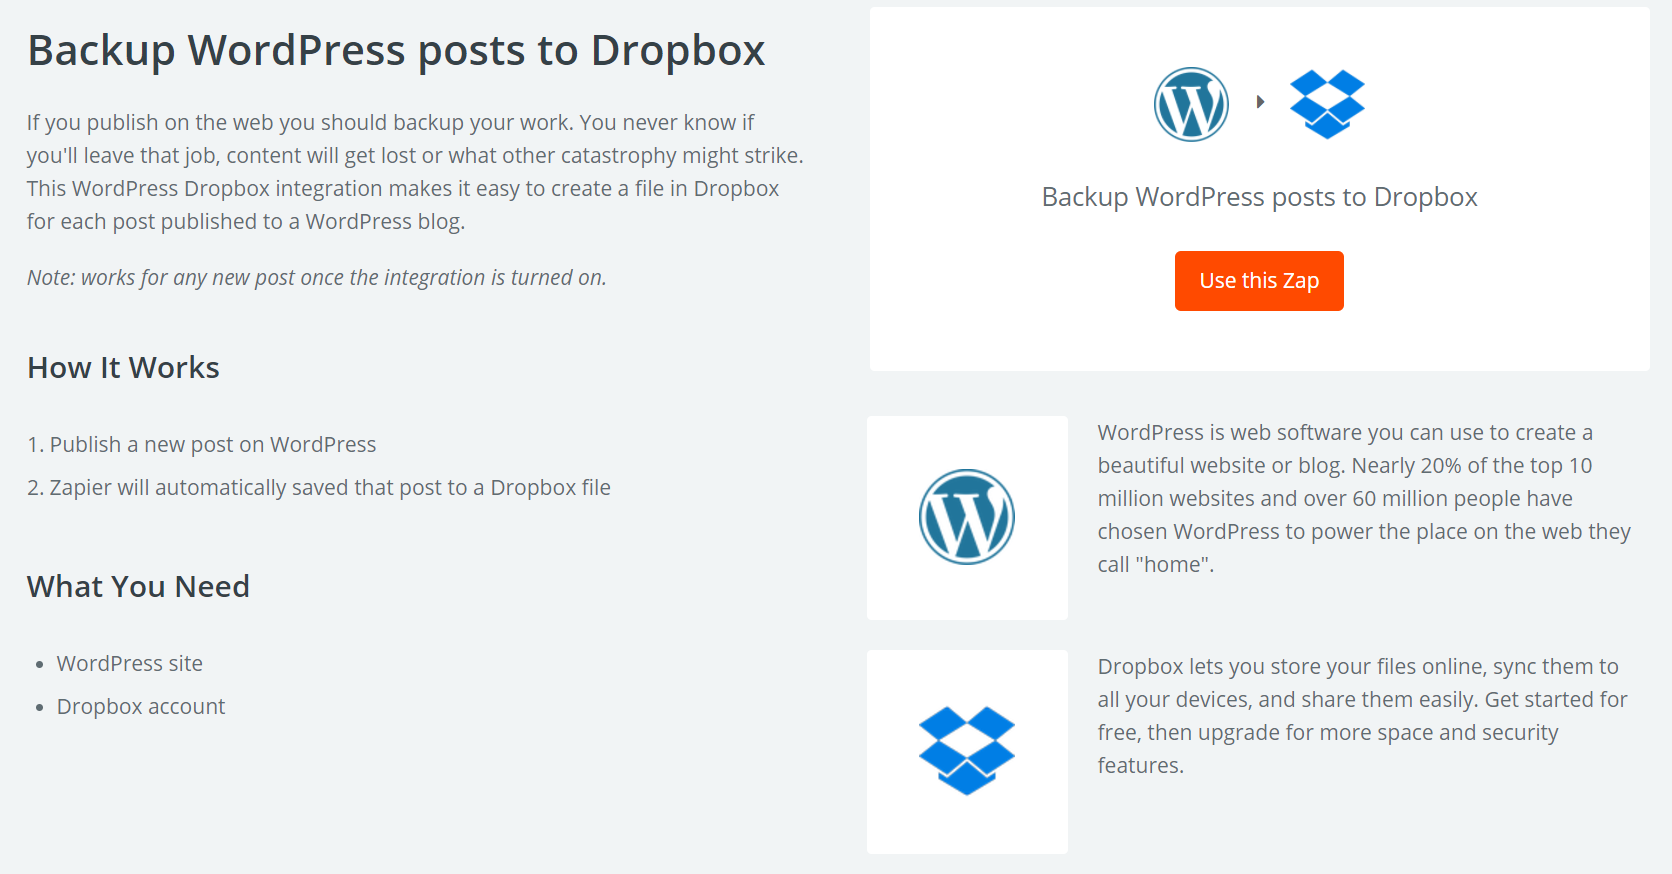 The Dropbox integration Zap.